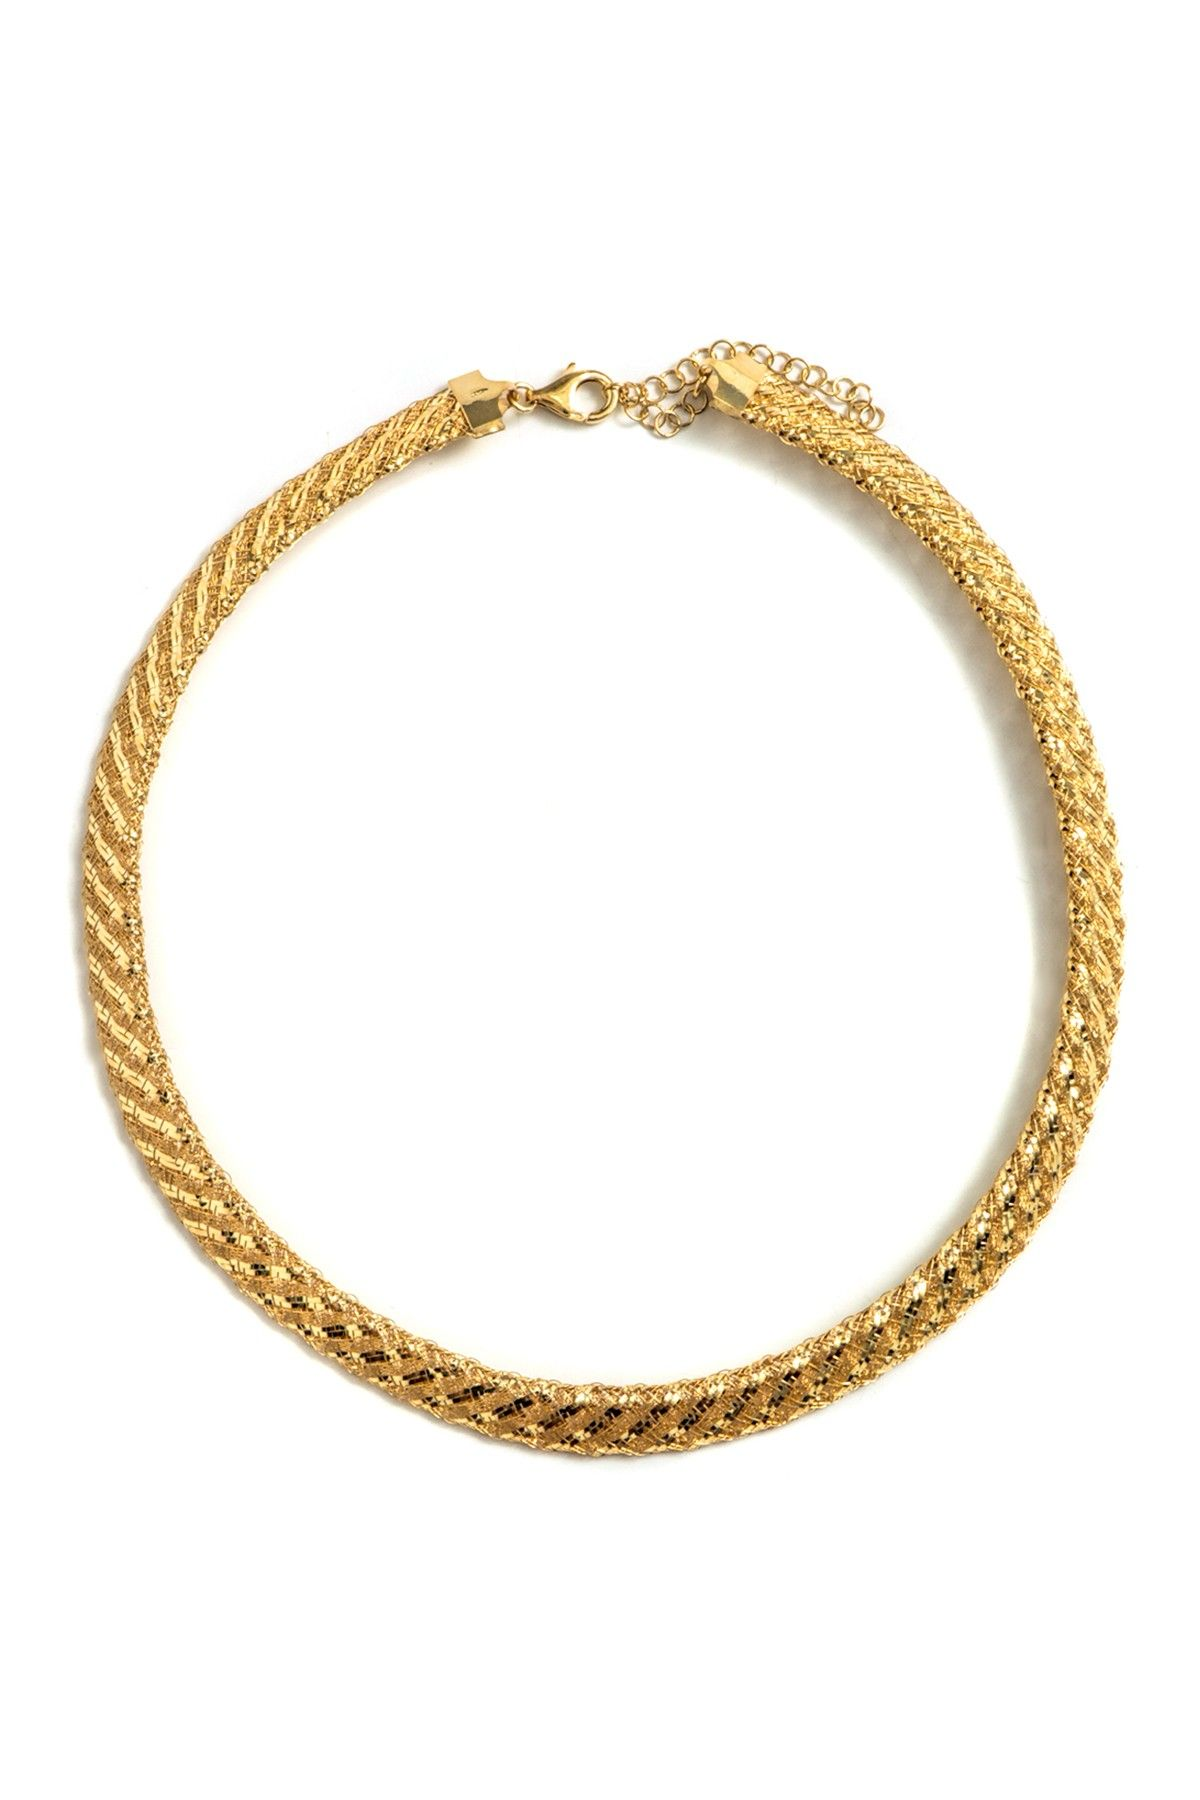 K yellow gold plated sterling silver thick mesh necklace on